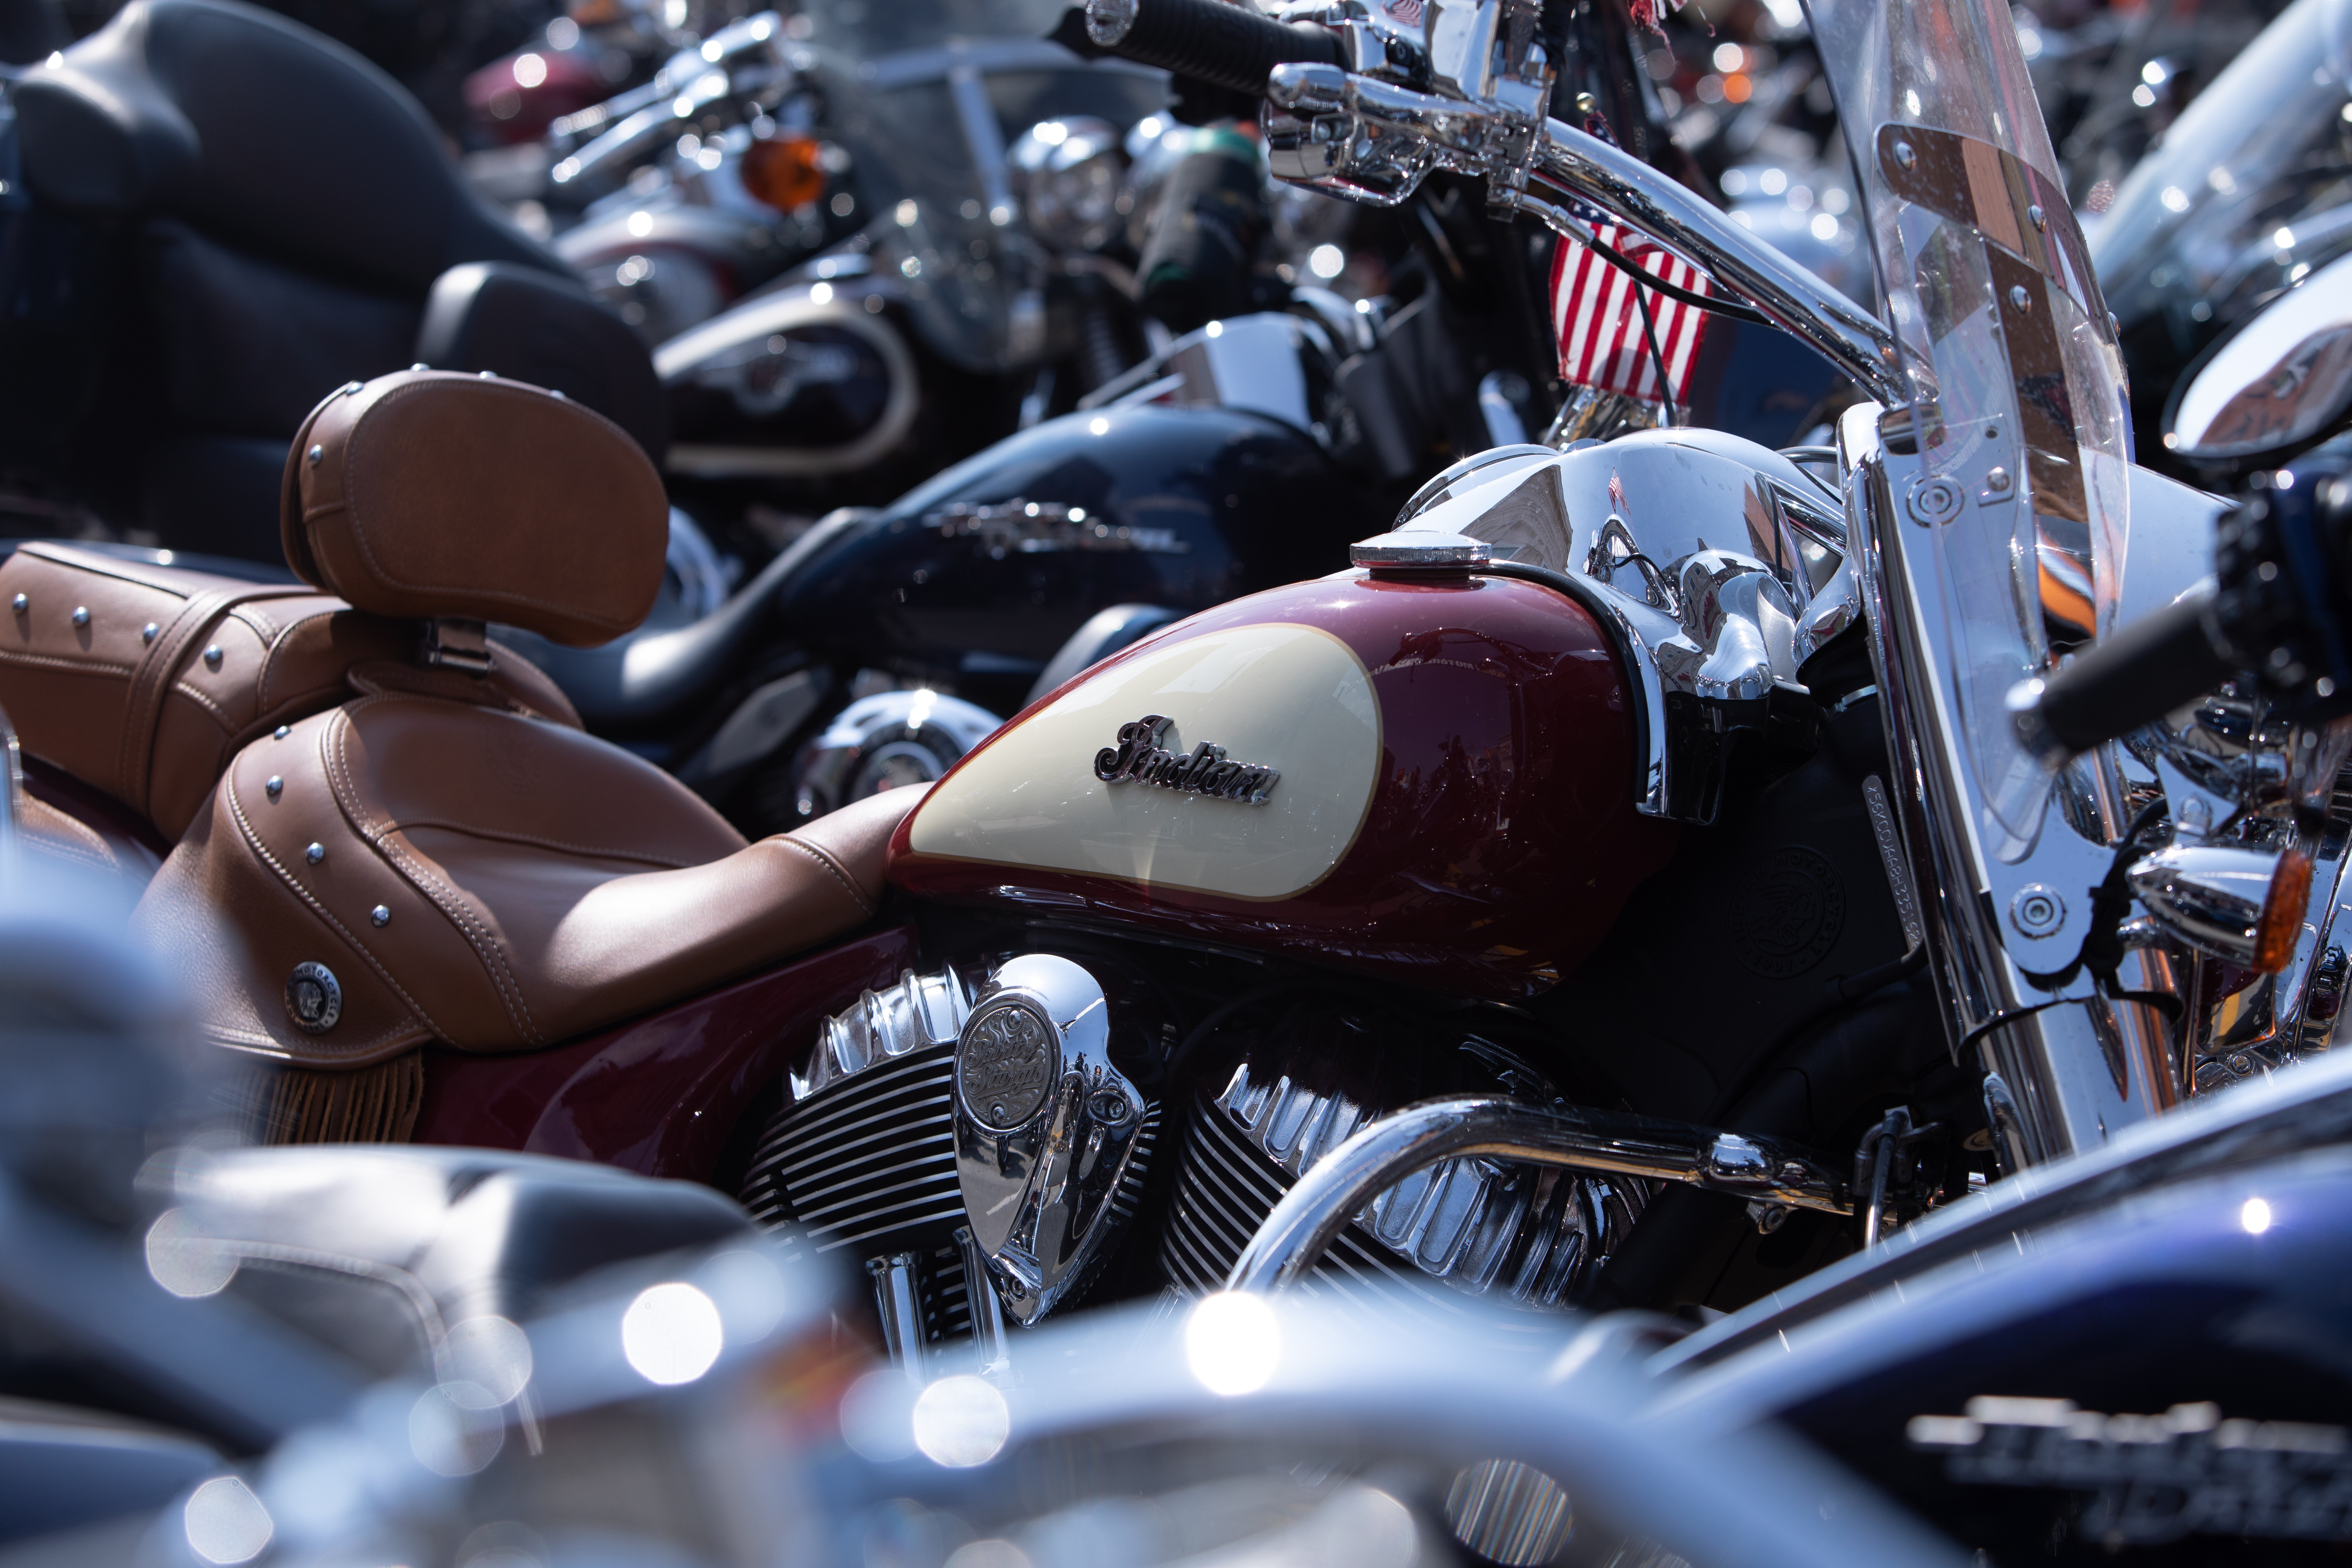 Sell a Indian Motorcycle fast online.